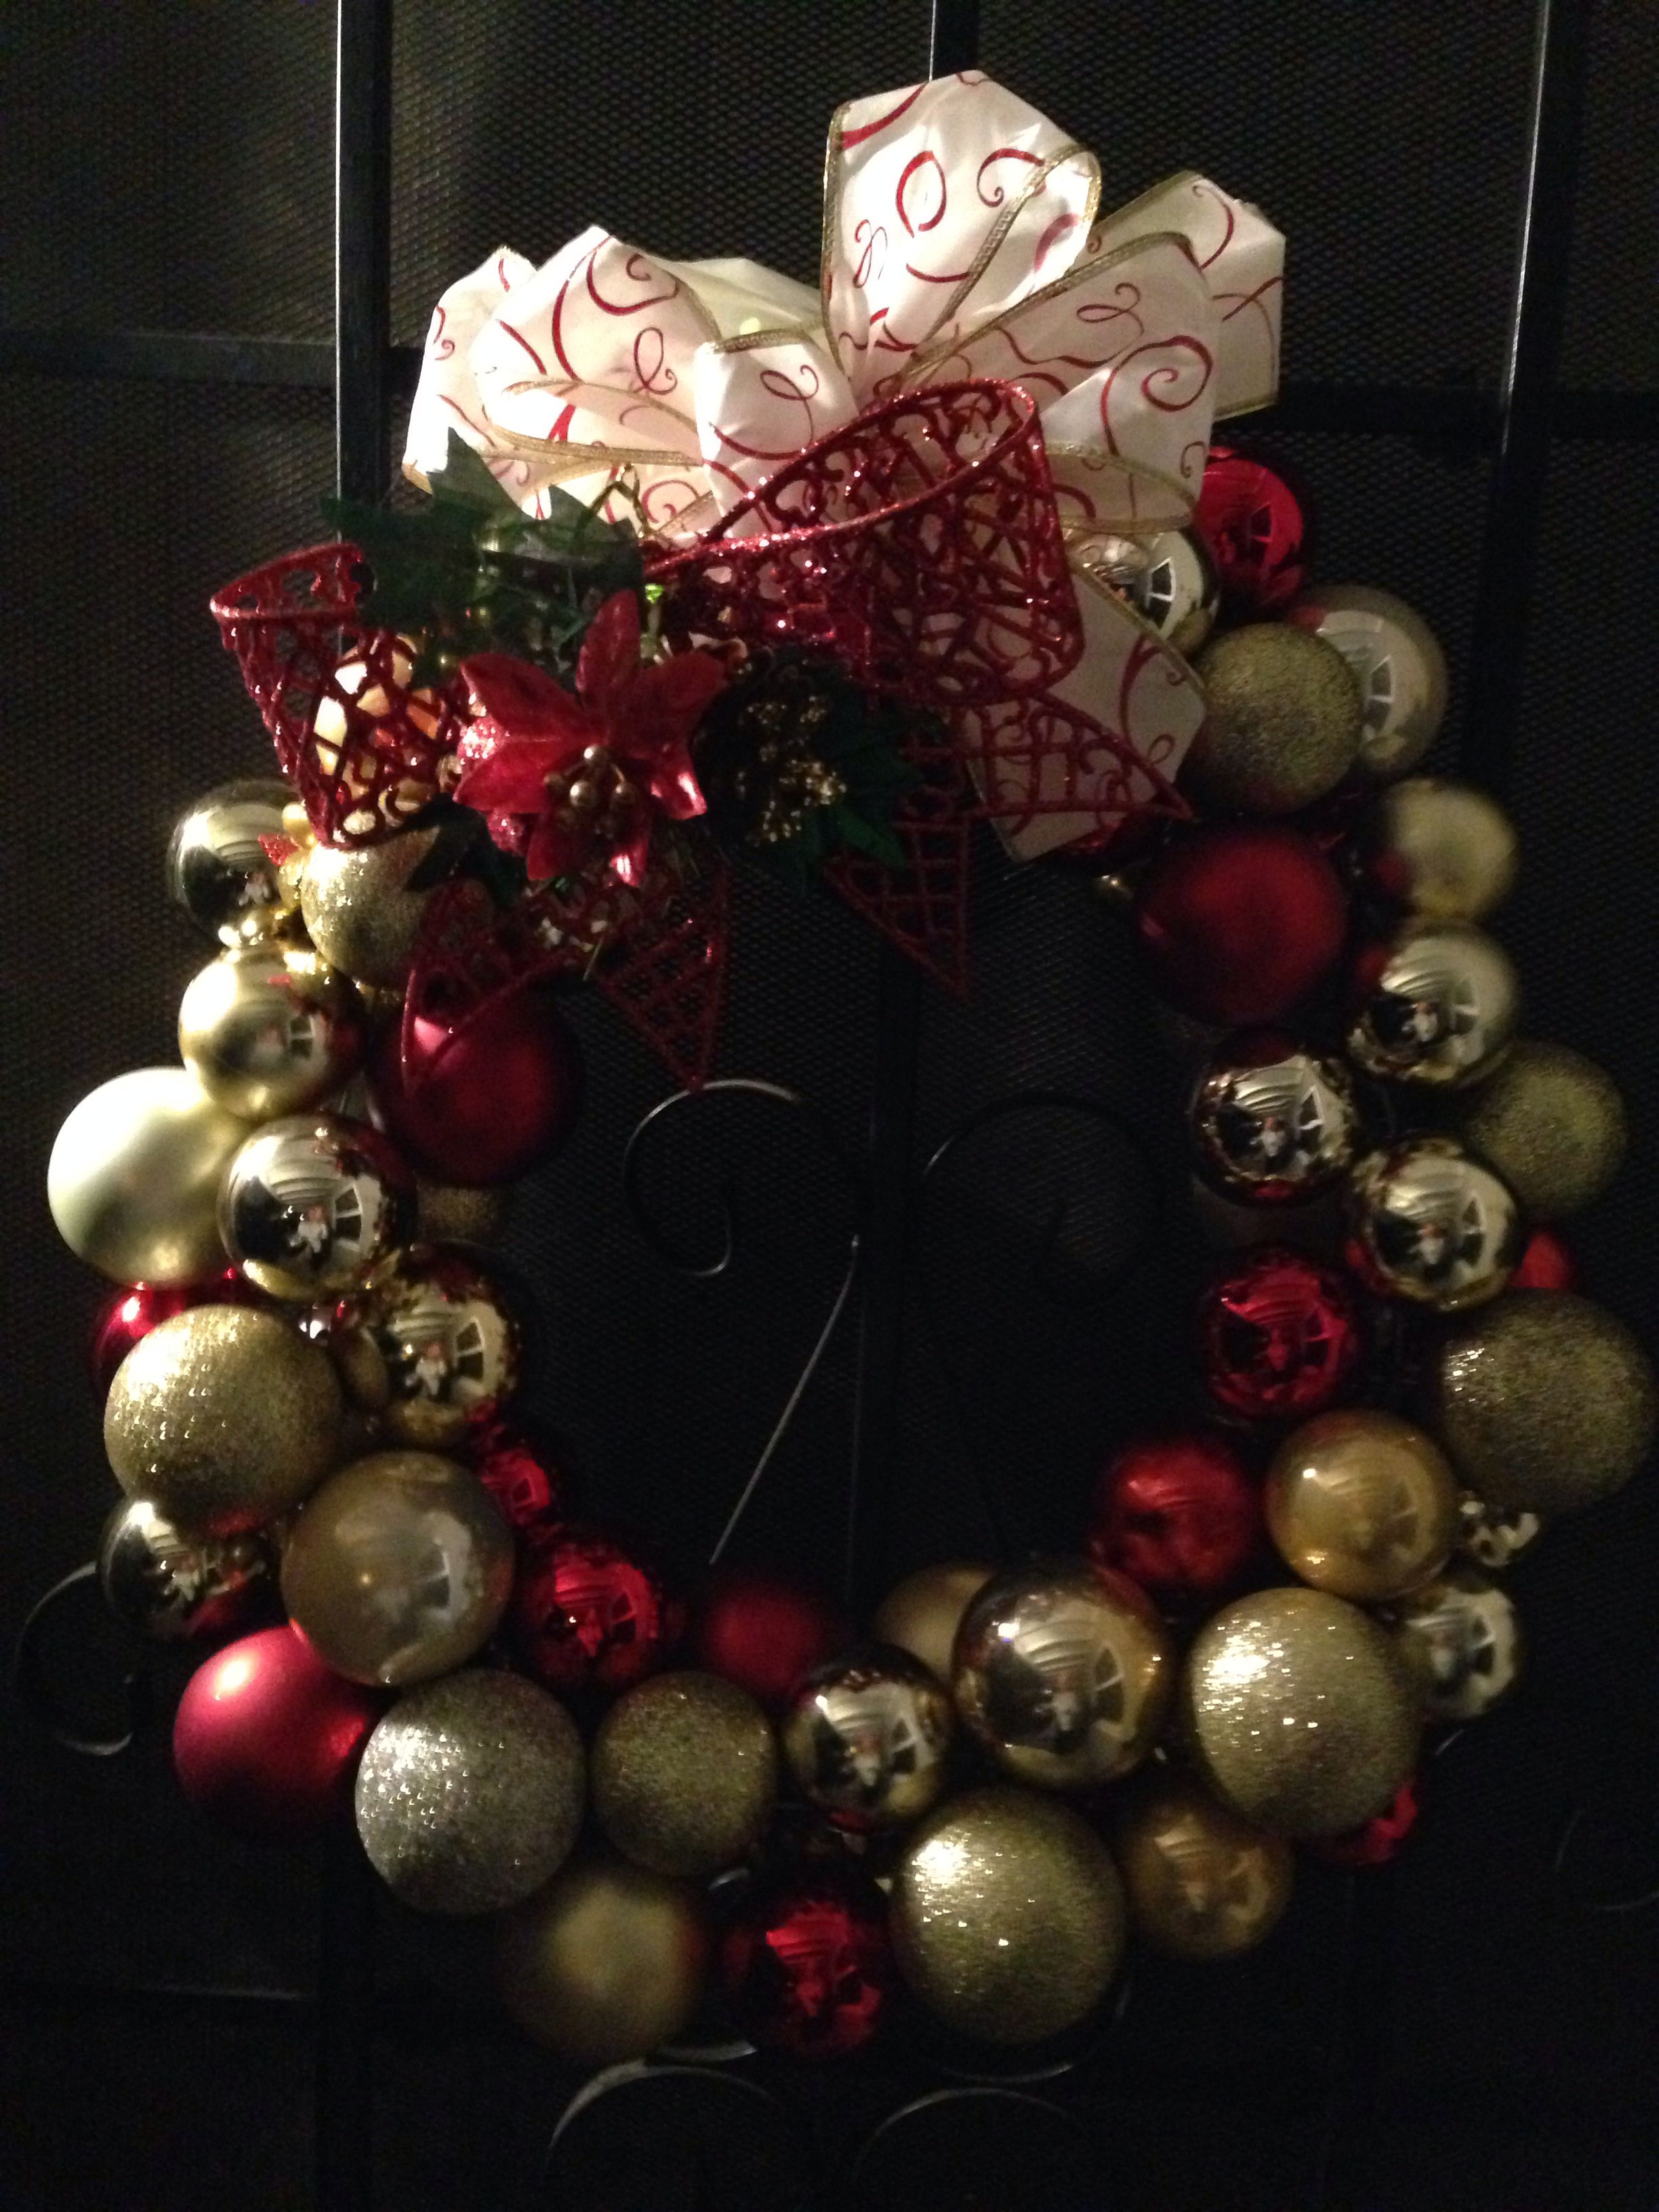 My Christmas Red and Gold Ornament Wreath